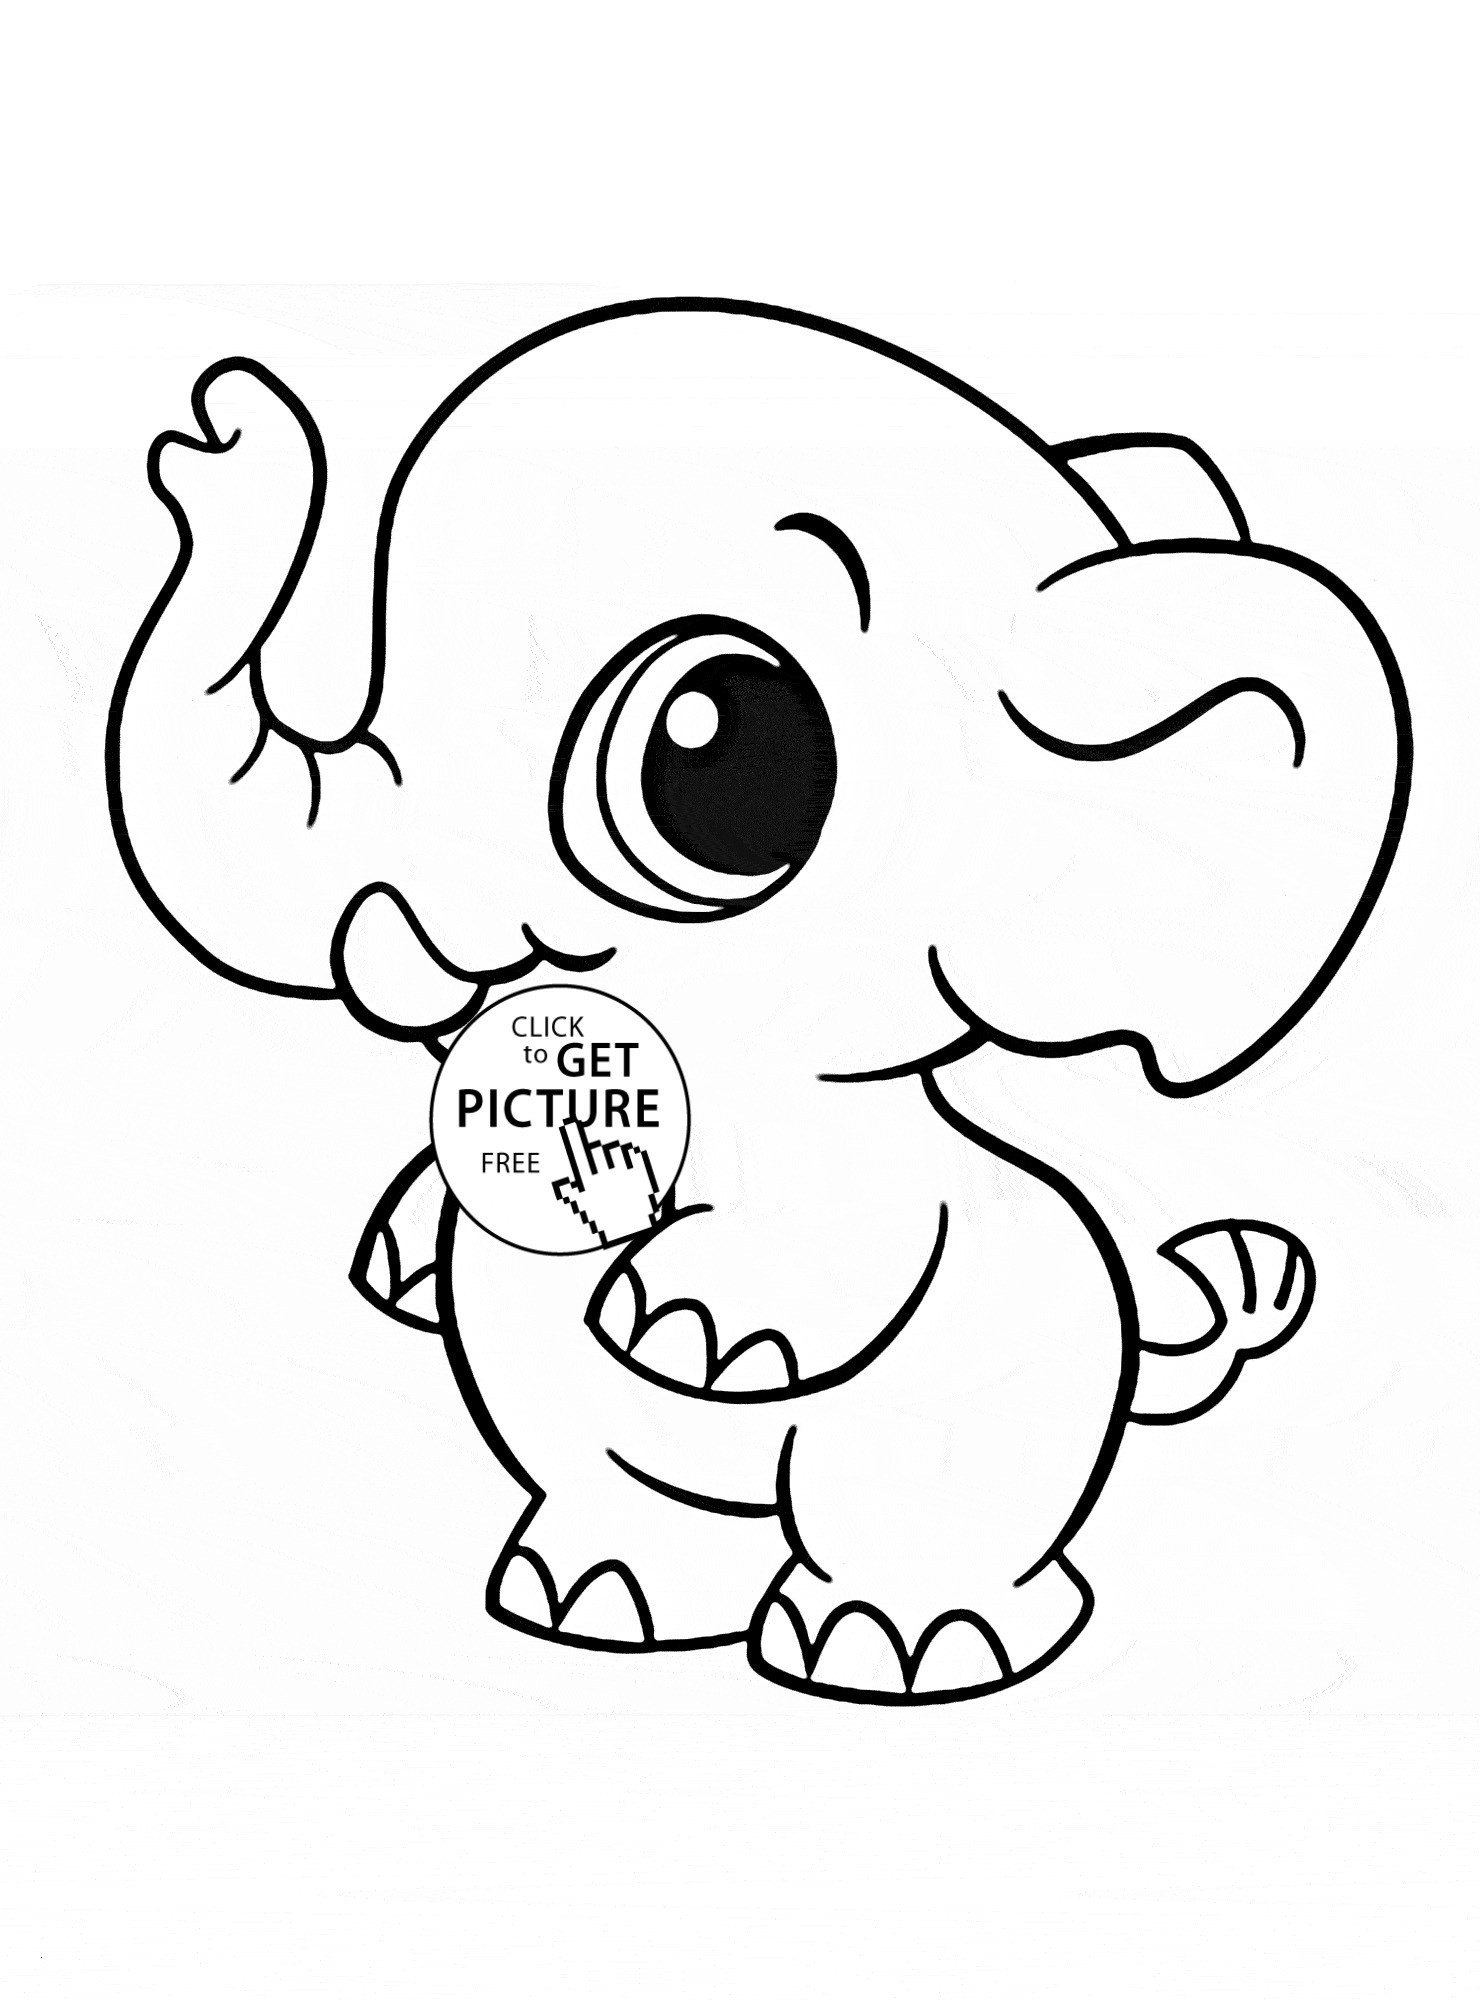 shopping coloring pages Collection-Littlest Petshop Coloring Pages Awesome Littlest Pet Shop Coloring Luxus Littlest Pet Shop Ausmalbilder Zum Ausdrucken 3-s